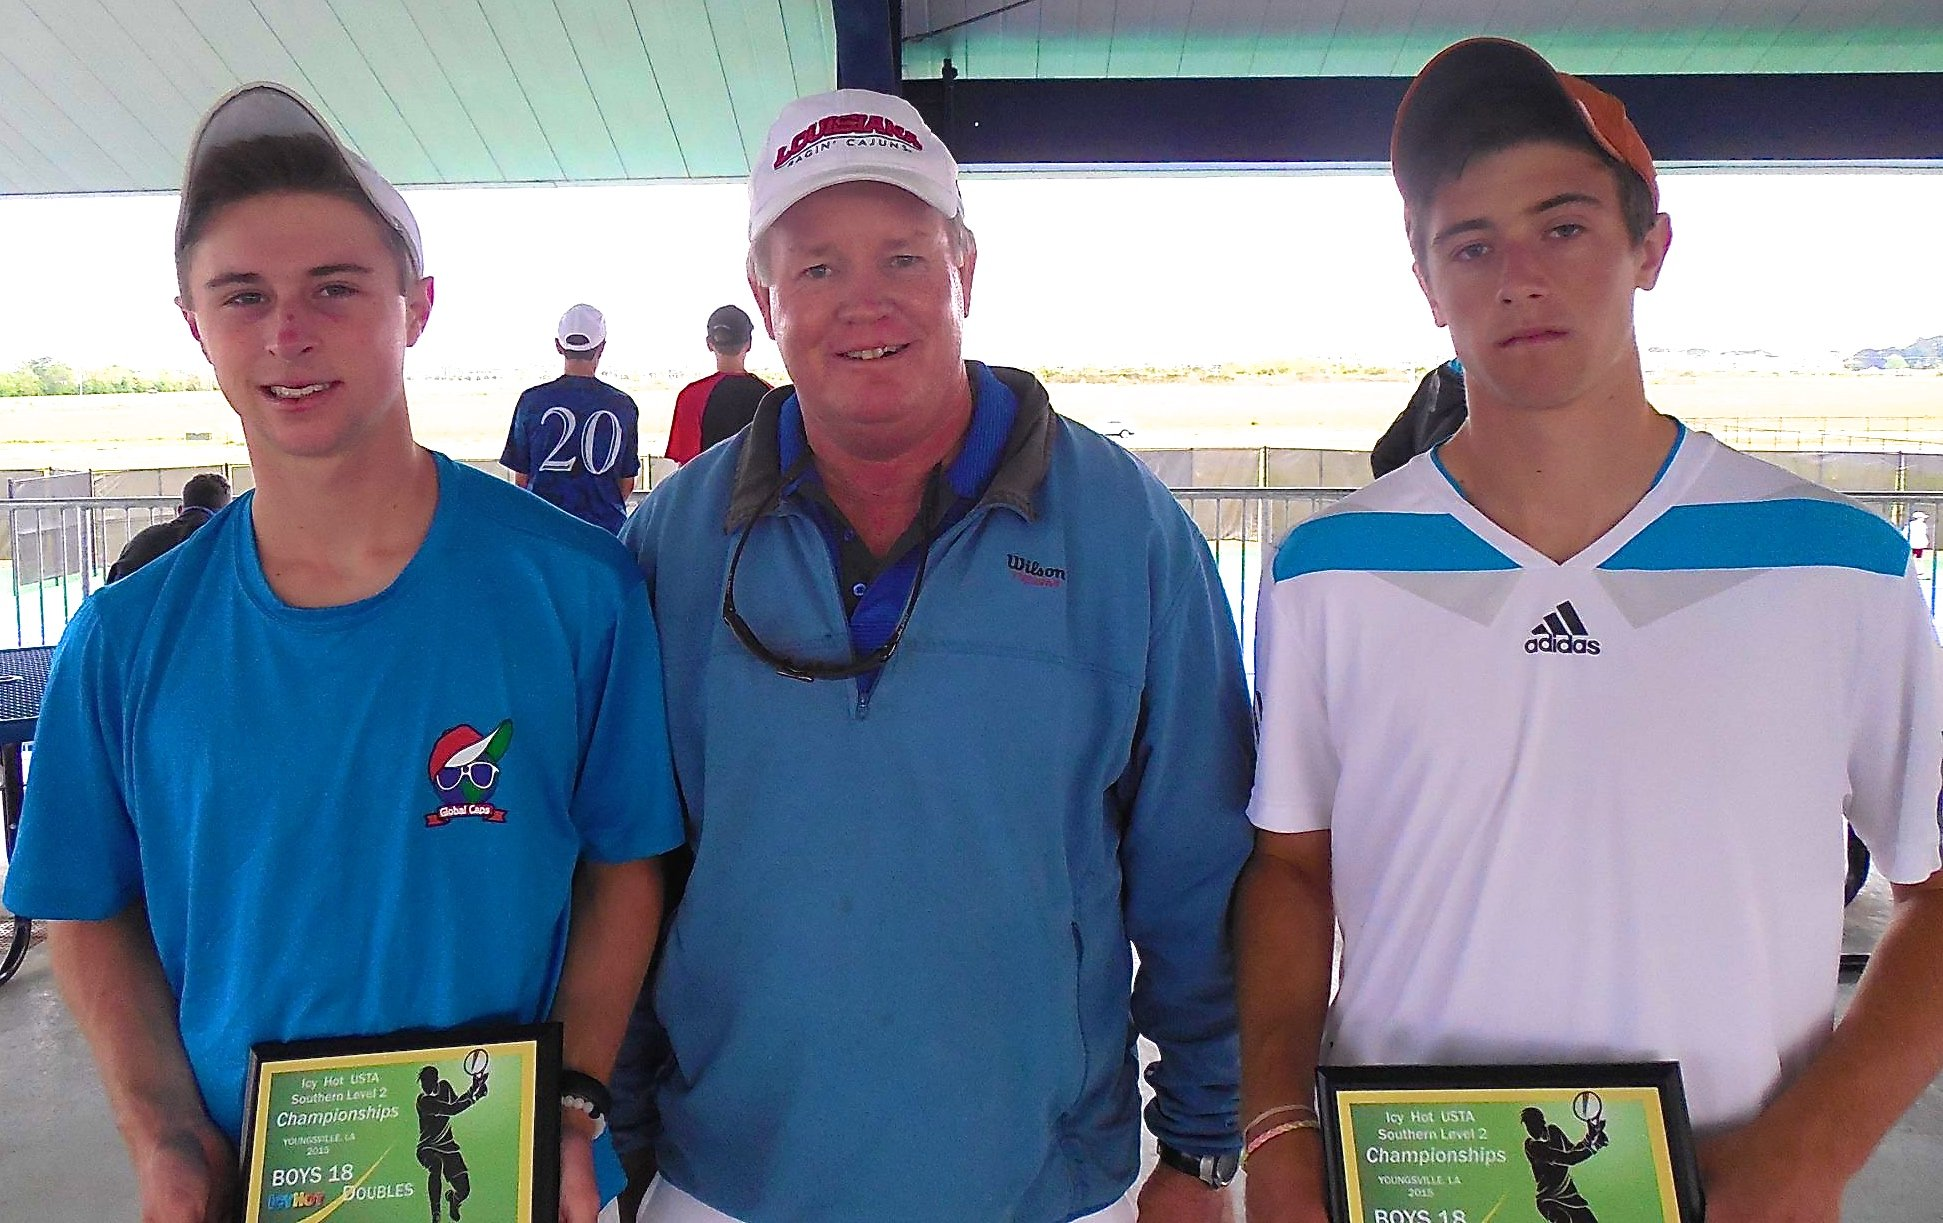 Runner Up 18 left: Paul Hendrix from Murrells Inlet, South Carolina right: Chase Schupp from New Orleans, Louisiana